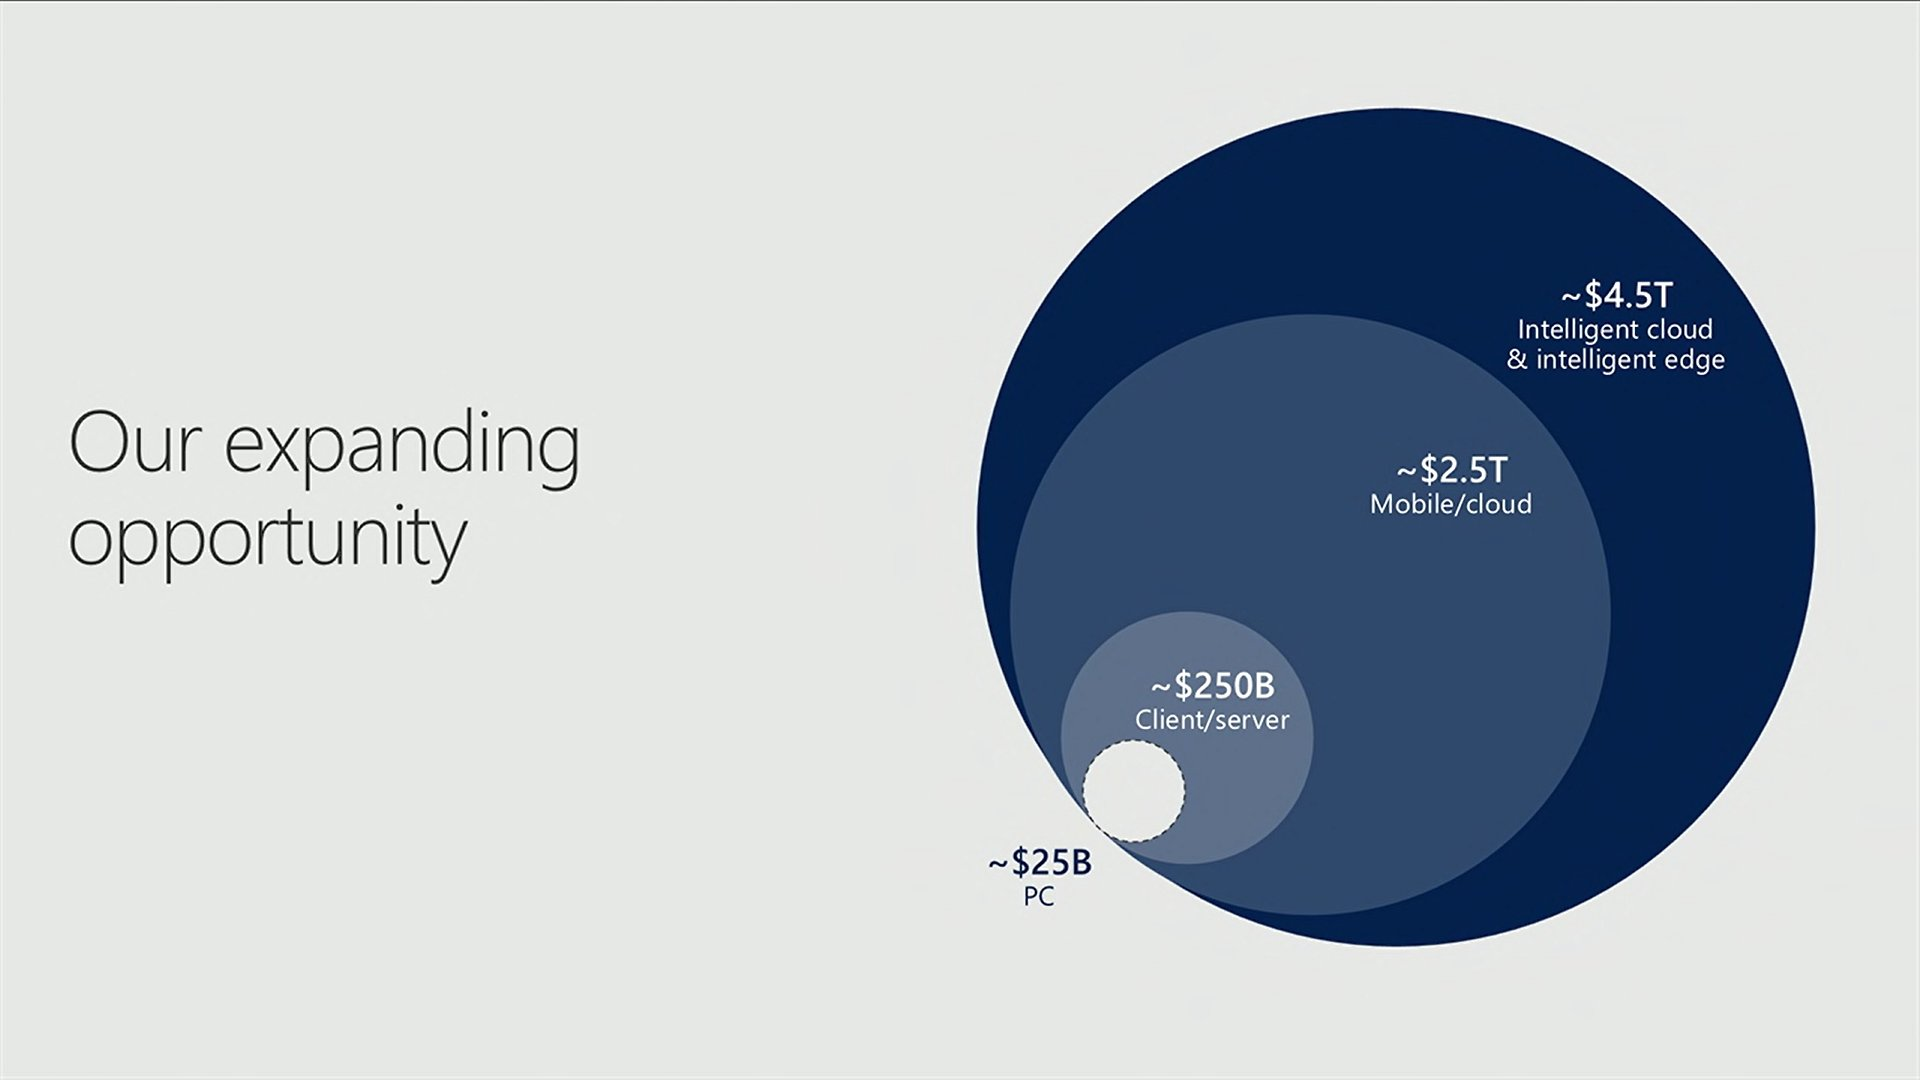 Our expanding opportunity through digital technology #MSInspire https://t.co/E7ntYMym5A